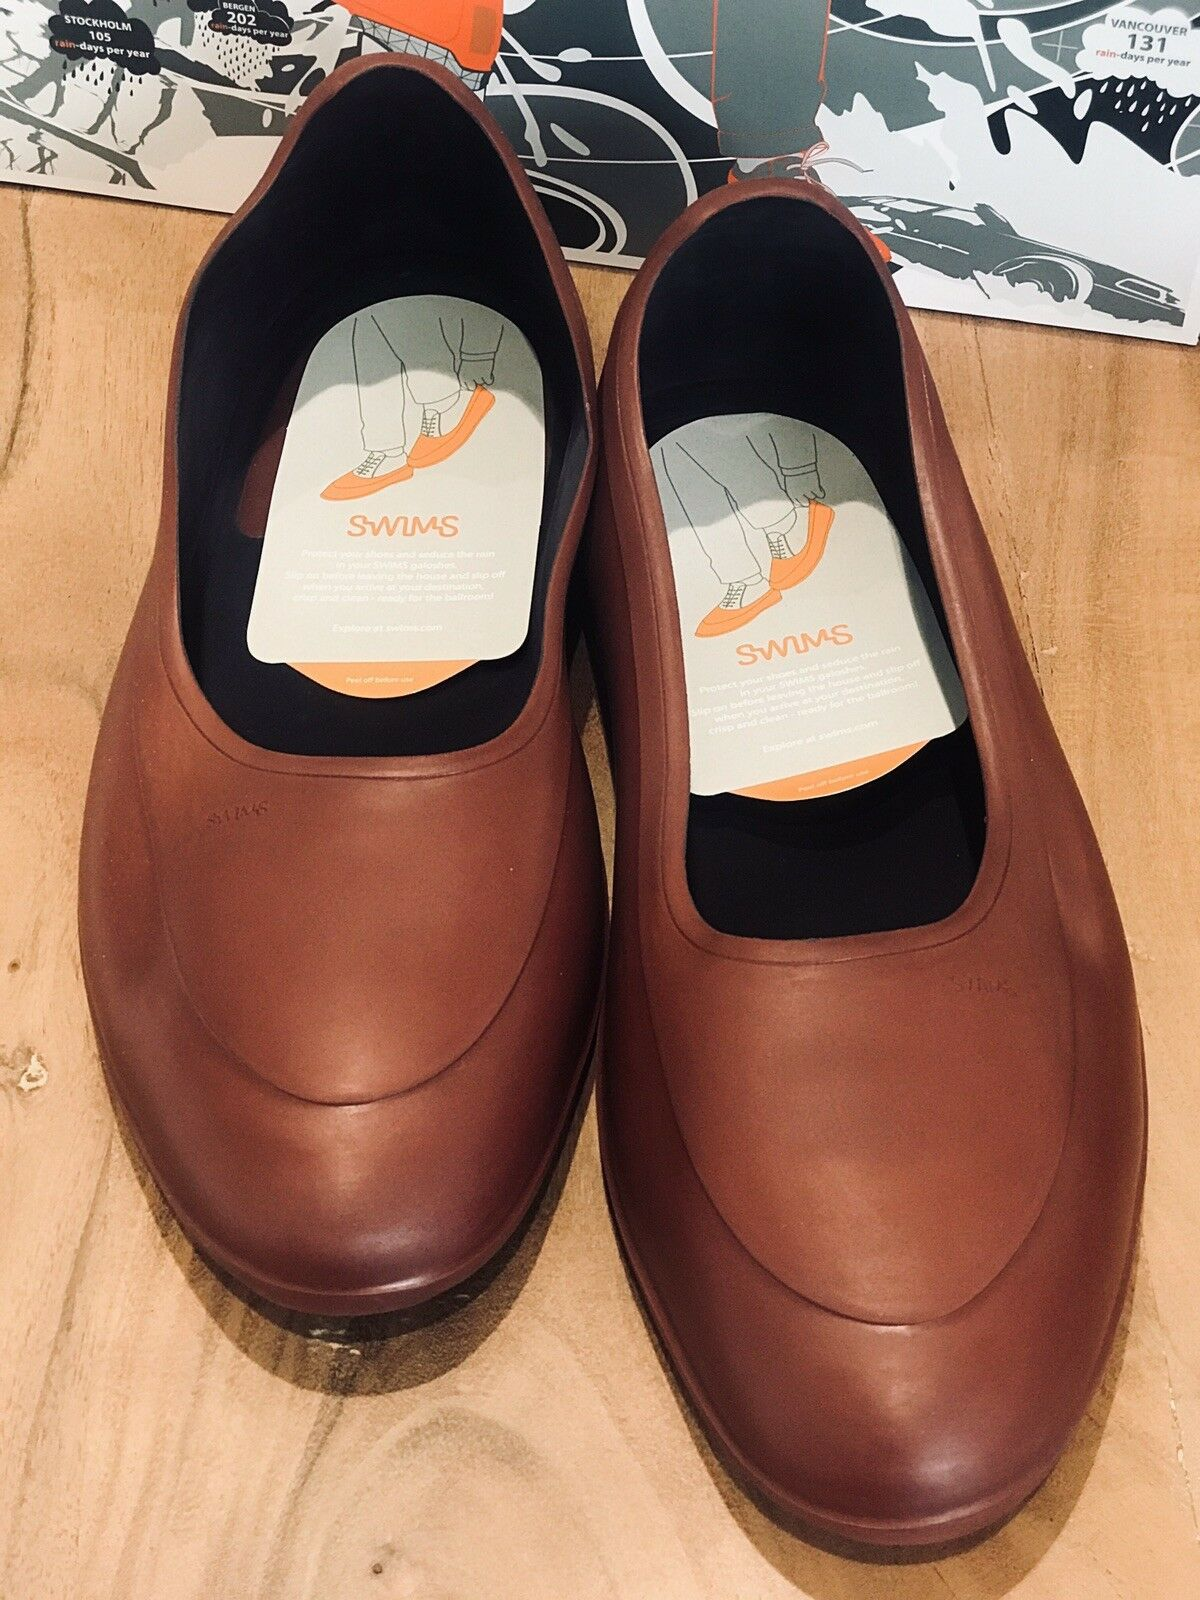 SWIMS GALOSHES XXL NWT BURGUNDY WITH CARRYING BAG BRAND NEW IN BOX SIZE 12-13.5